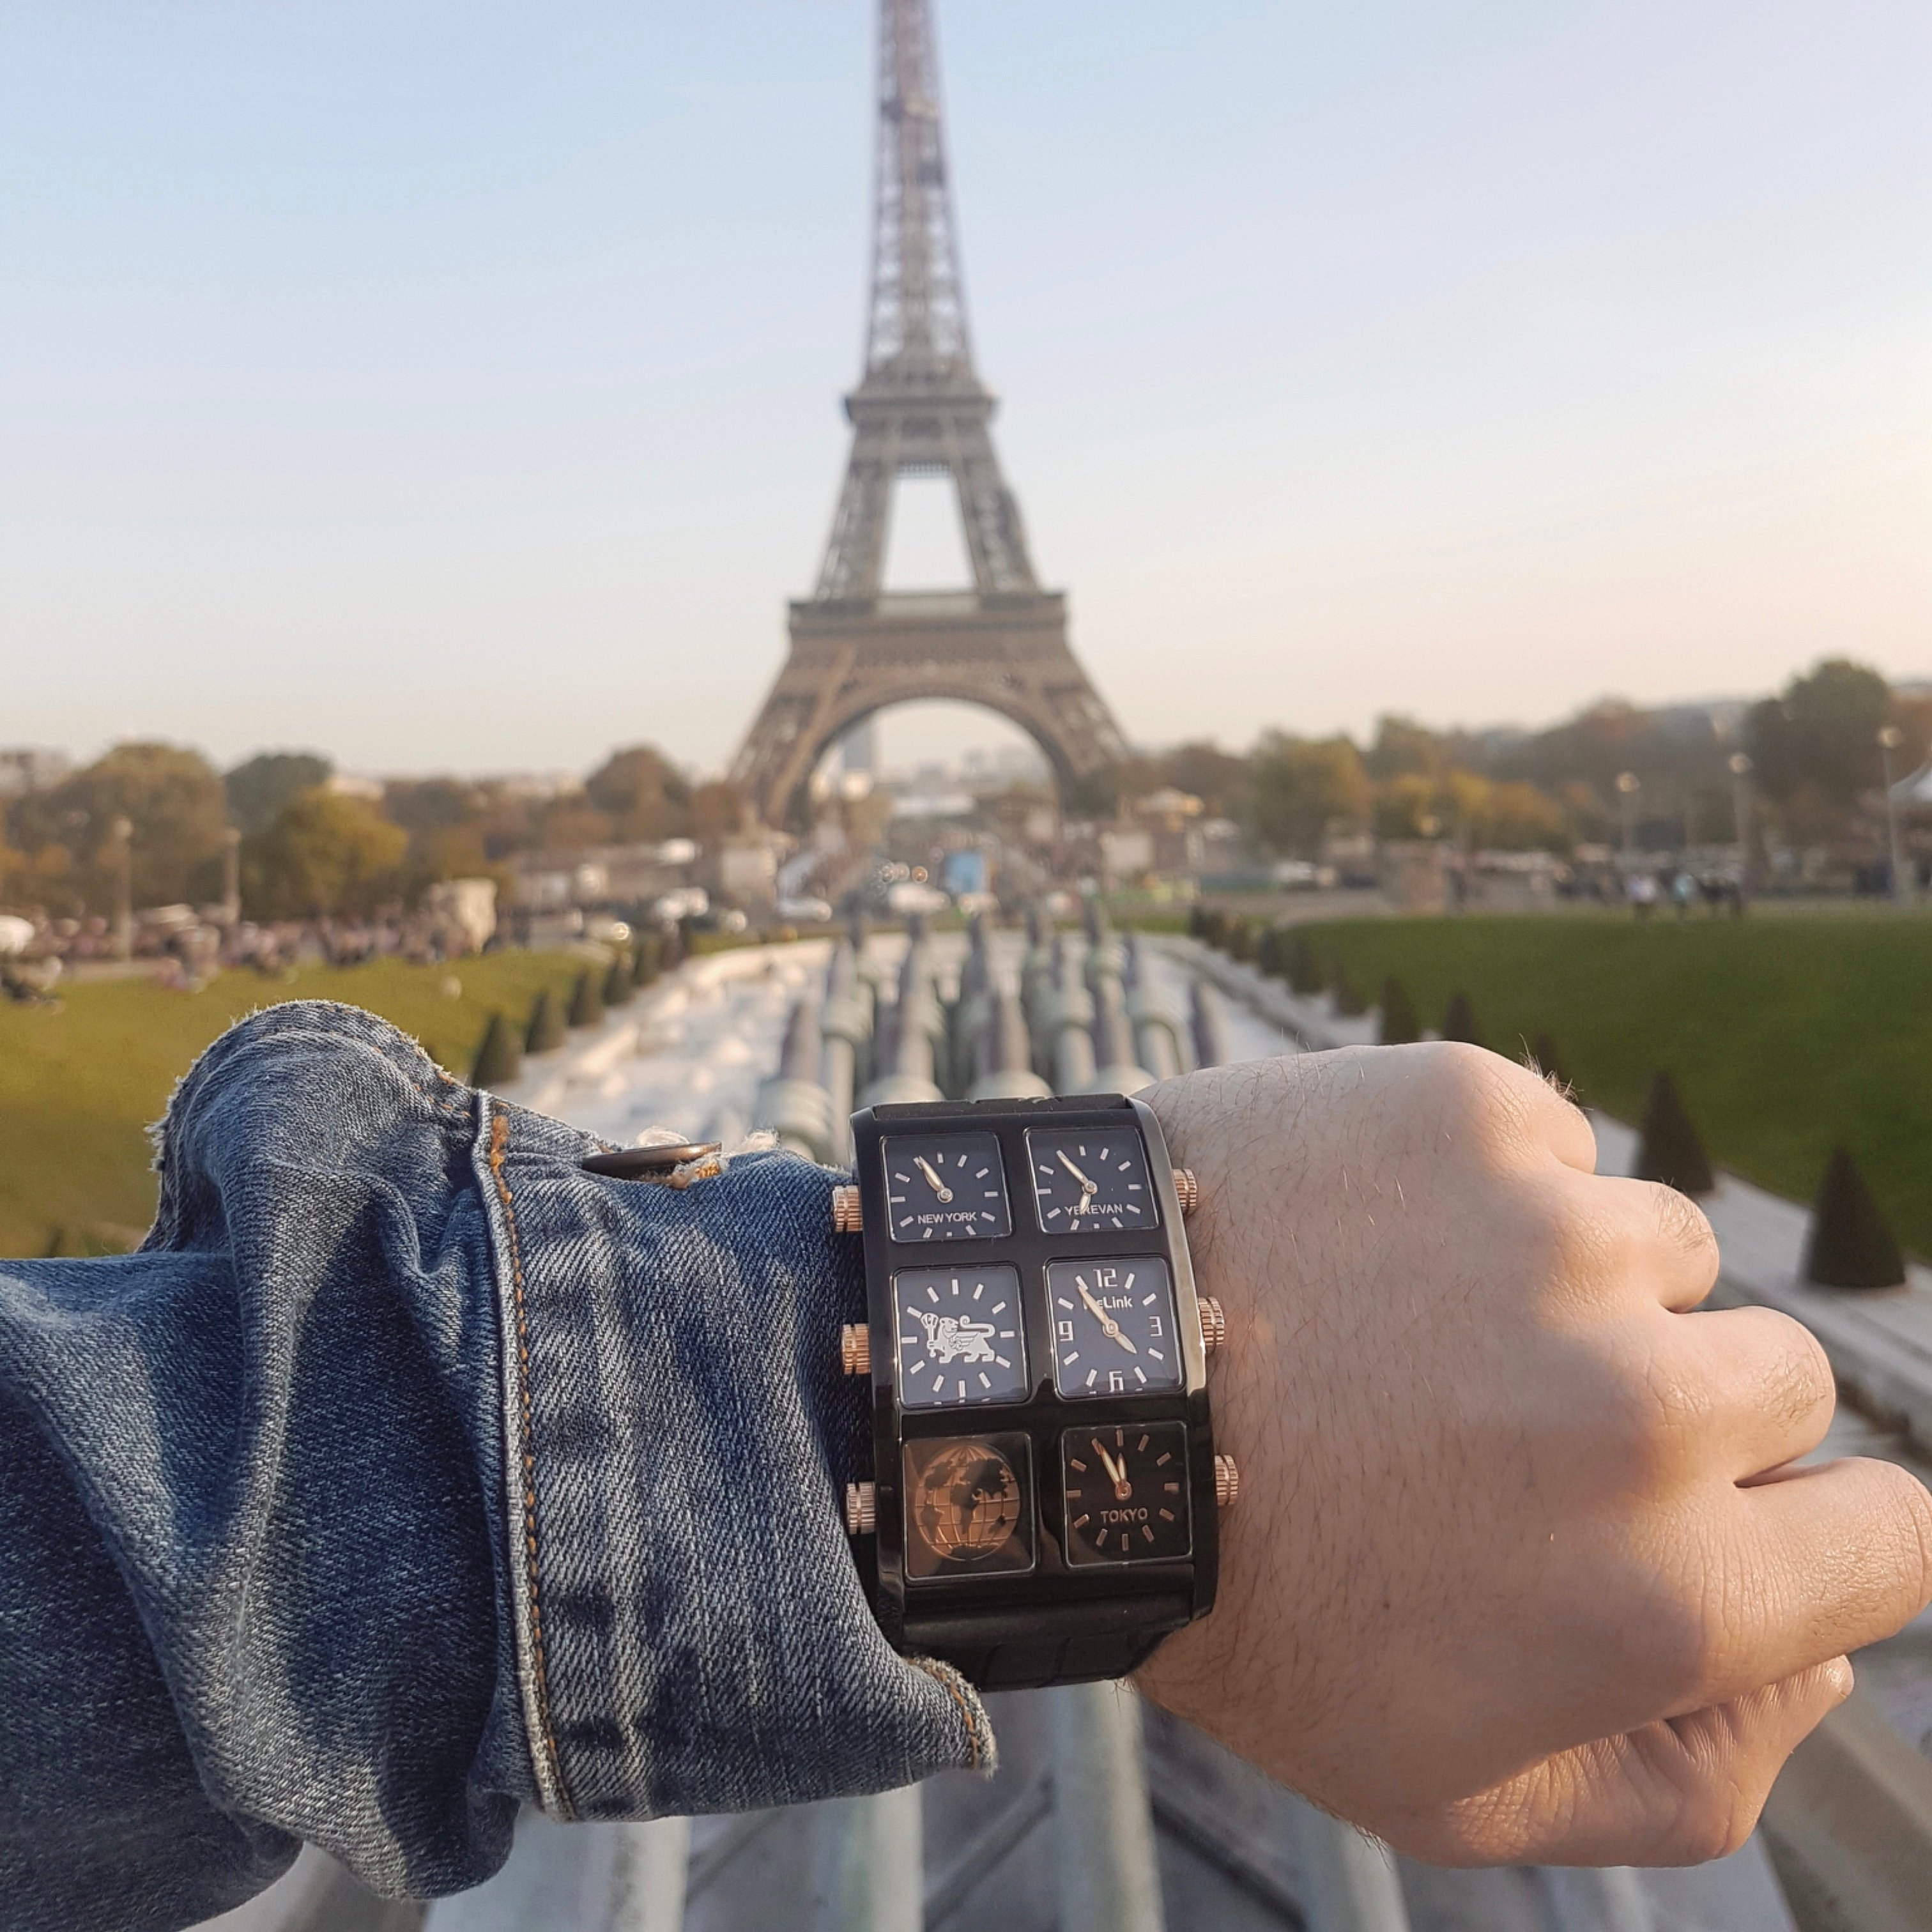 Telling time on the Jett Metal 60mm Multi-Time Zone Watch in front of the Eiffel Tower